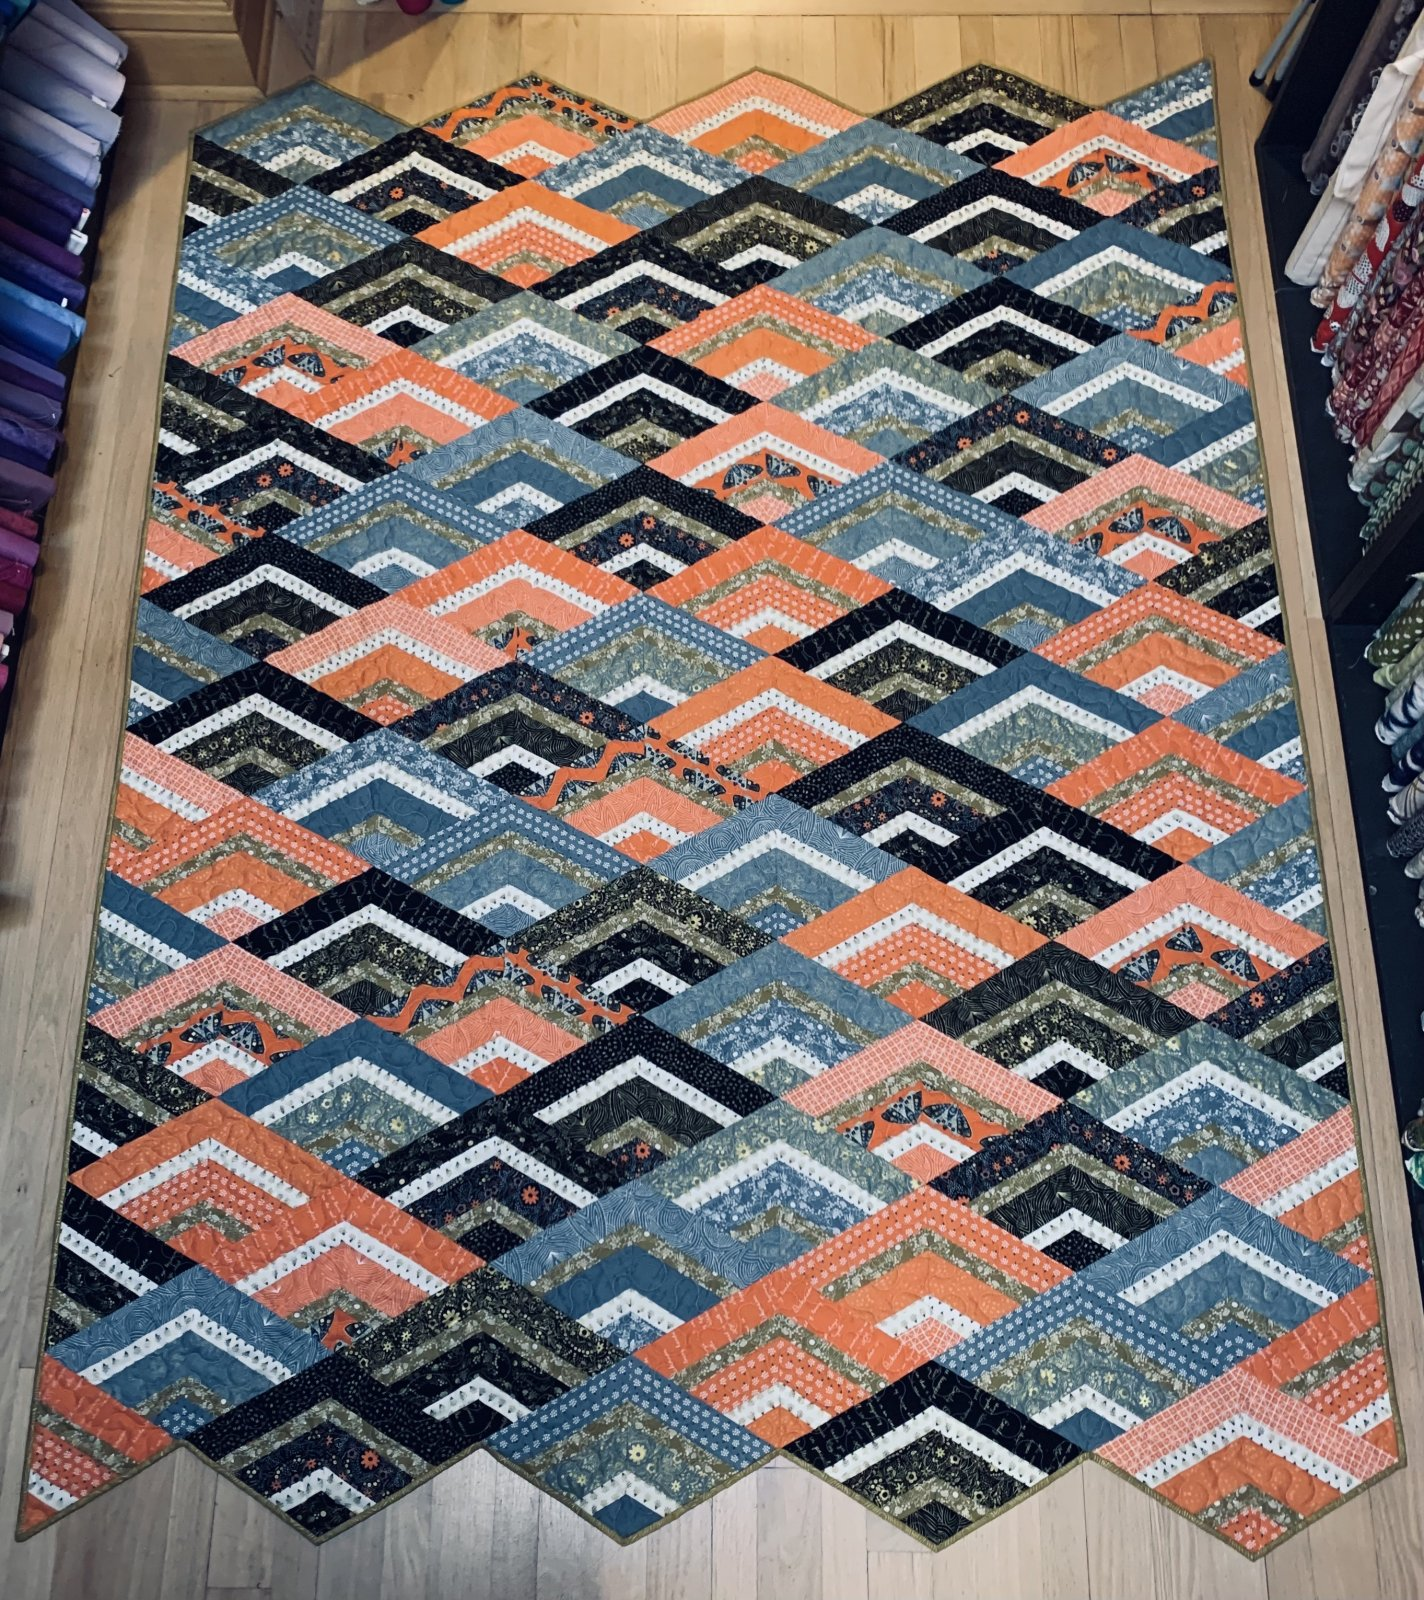 City Girl Chevron Quilt Kit 72 x 90 with Dwell In Possibility